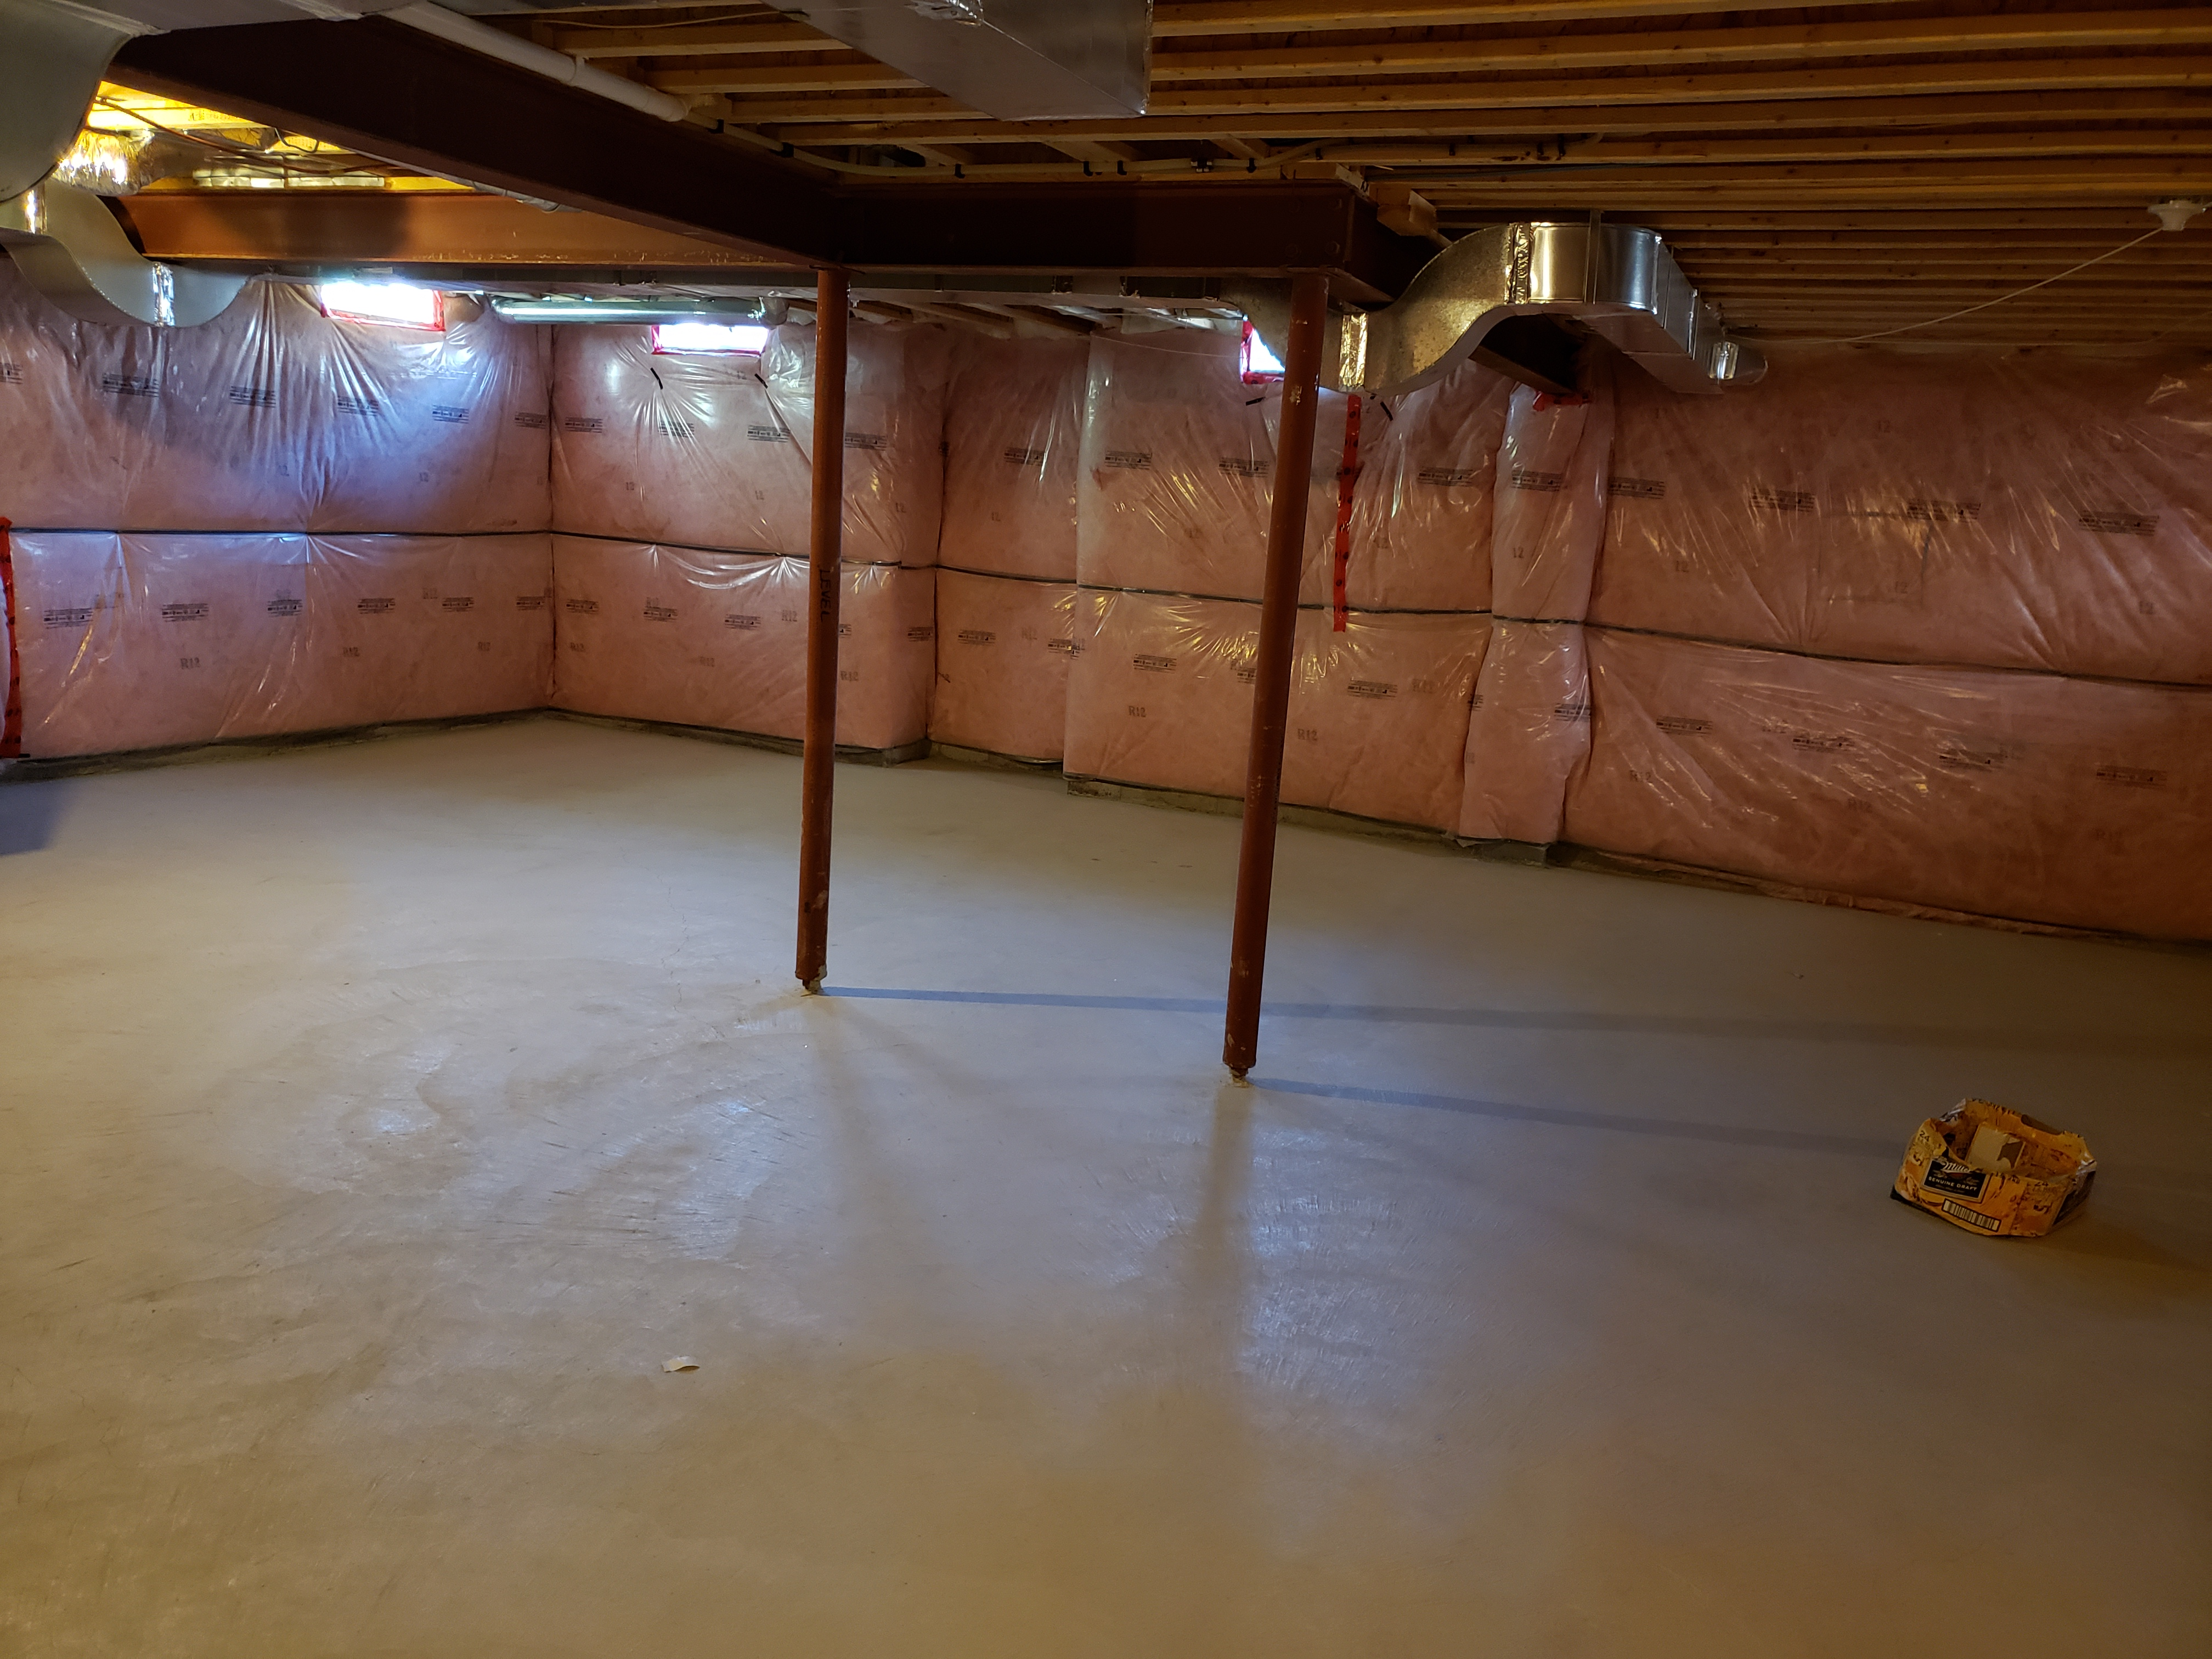 huge basement for storage with full access